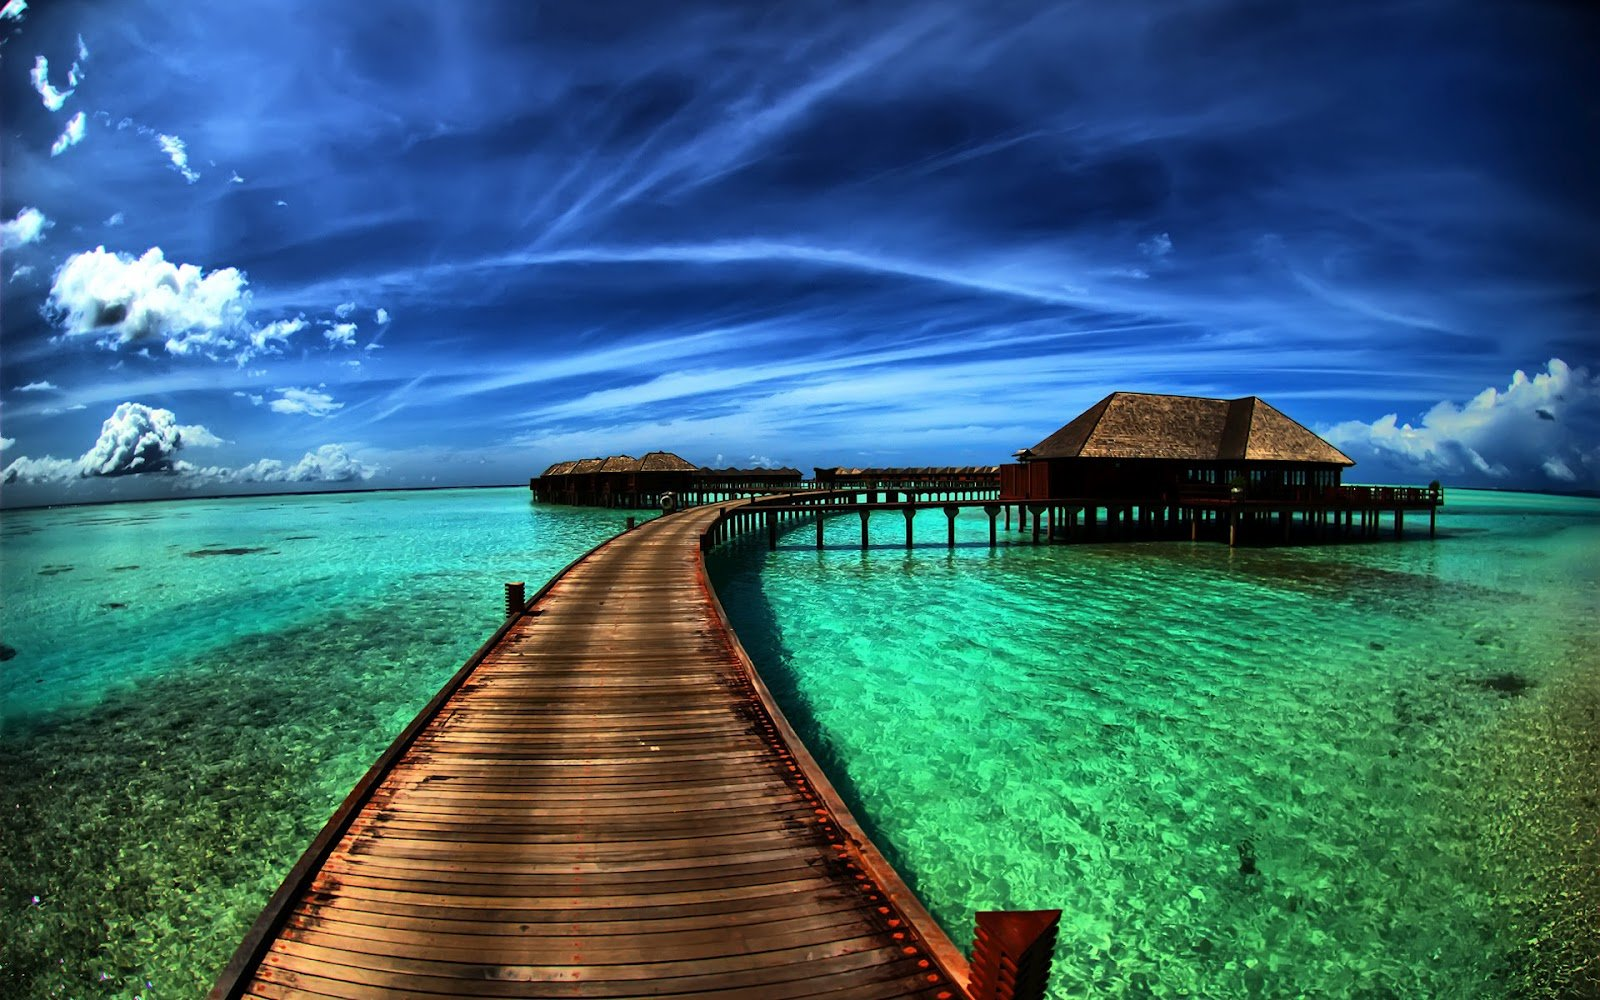 wallpaper proslut Flyover Beach Nature HD Widescreen Wallpapers for 1600x1000